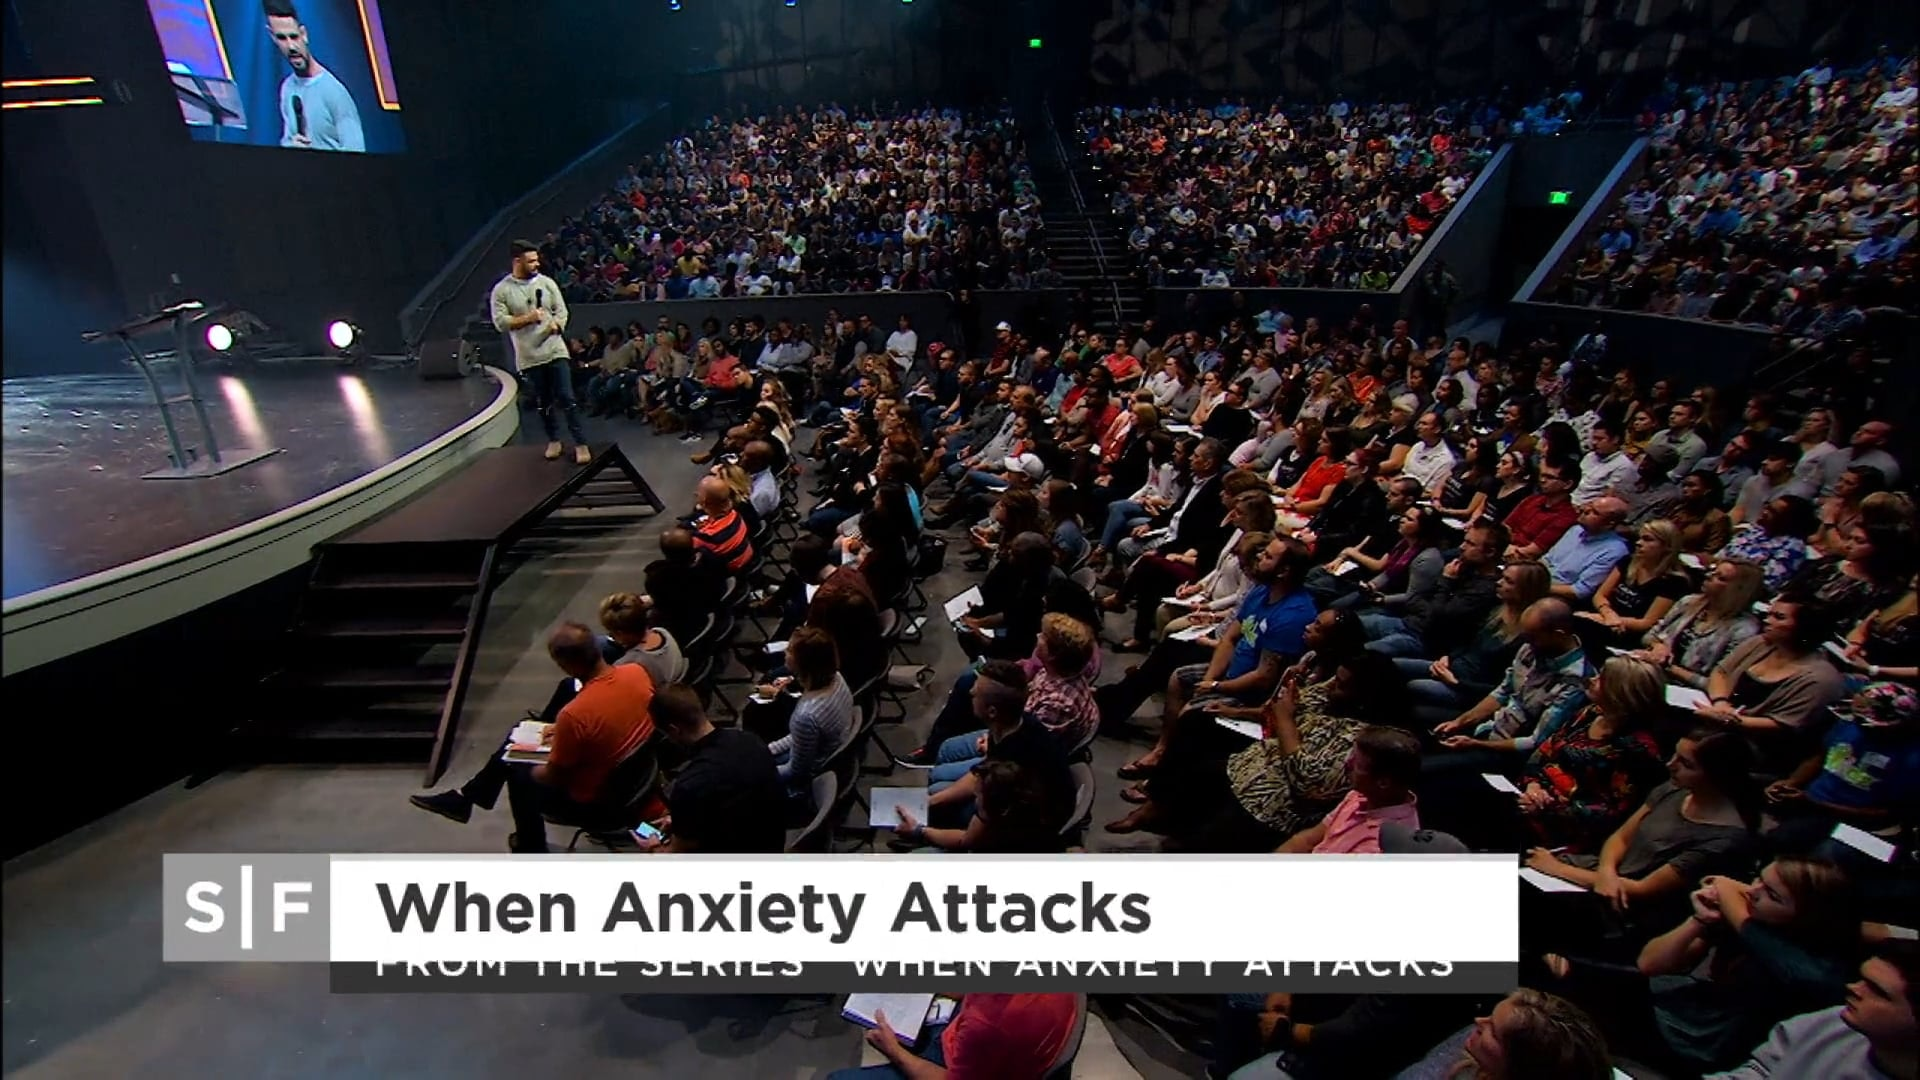 Watch When Anxiety Attacks: When Anxiety Attacks Part 2